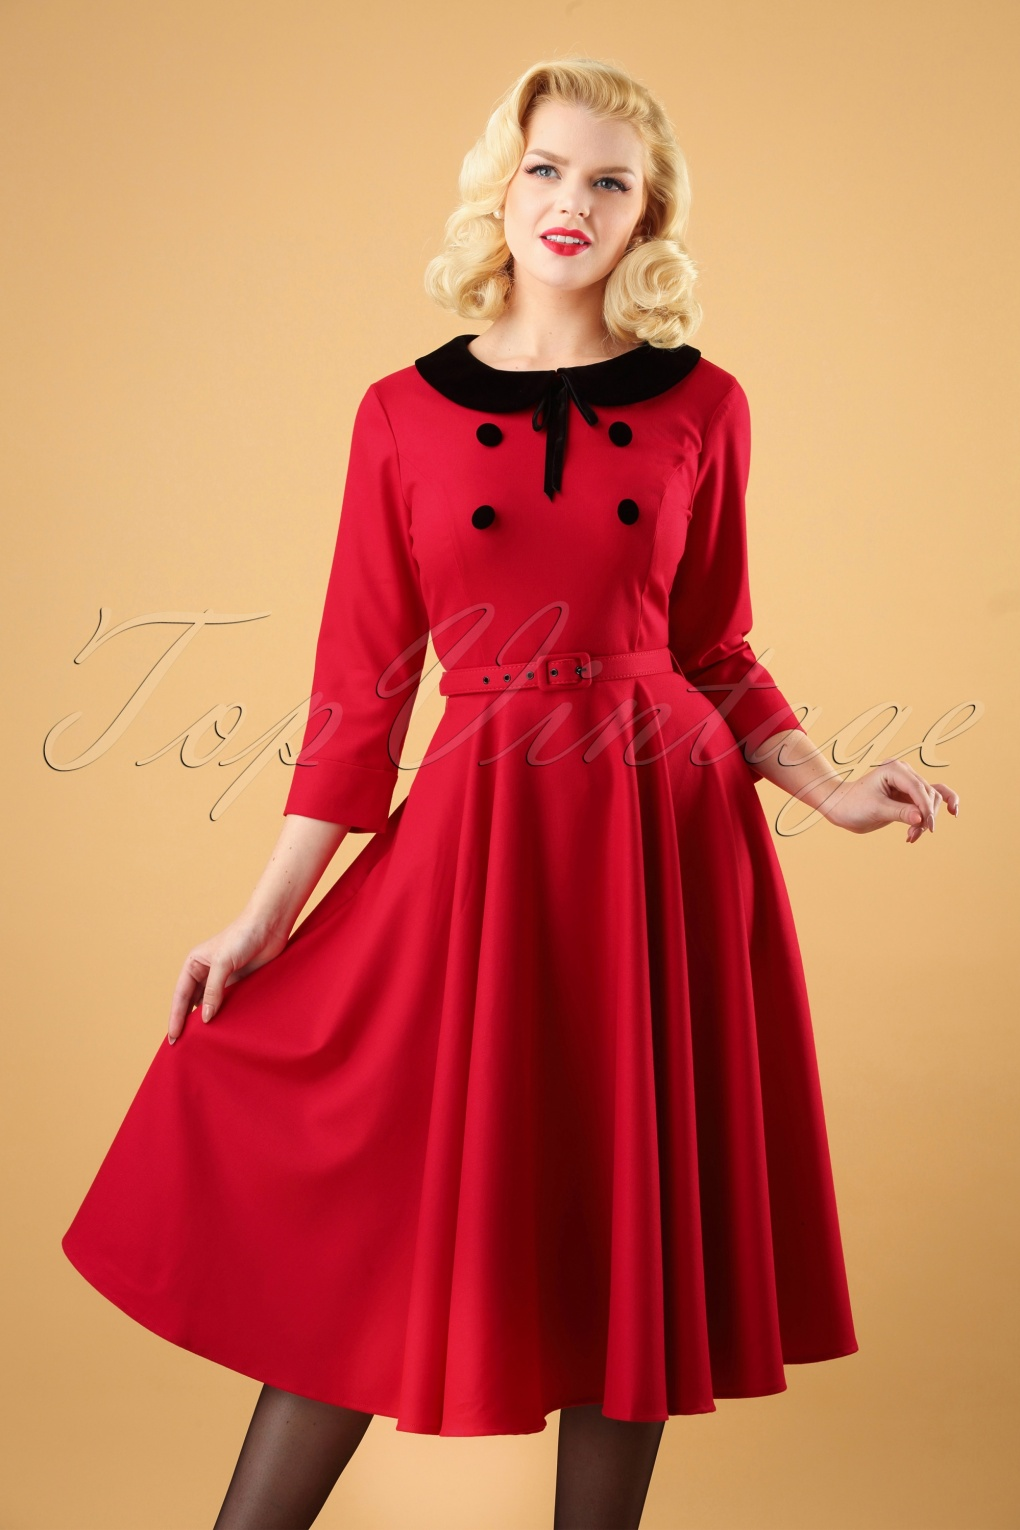 1950s Swing Dresses | 50s Swing Dress 50s Christine Swing Dress in Red £59.51 AT vintagedancer.com